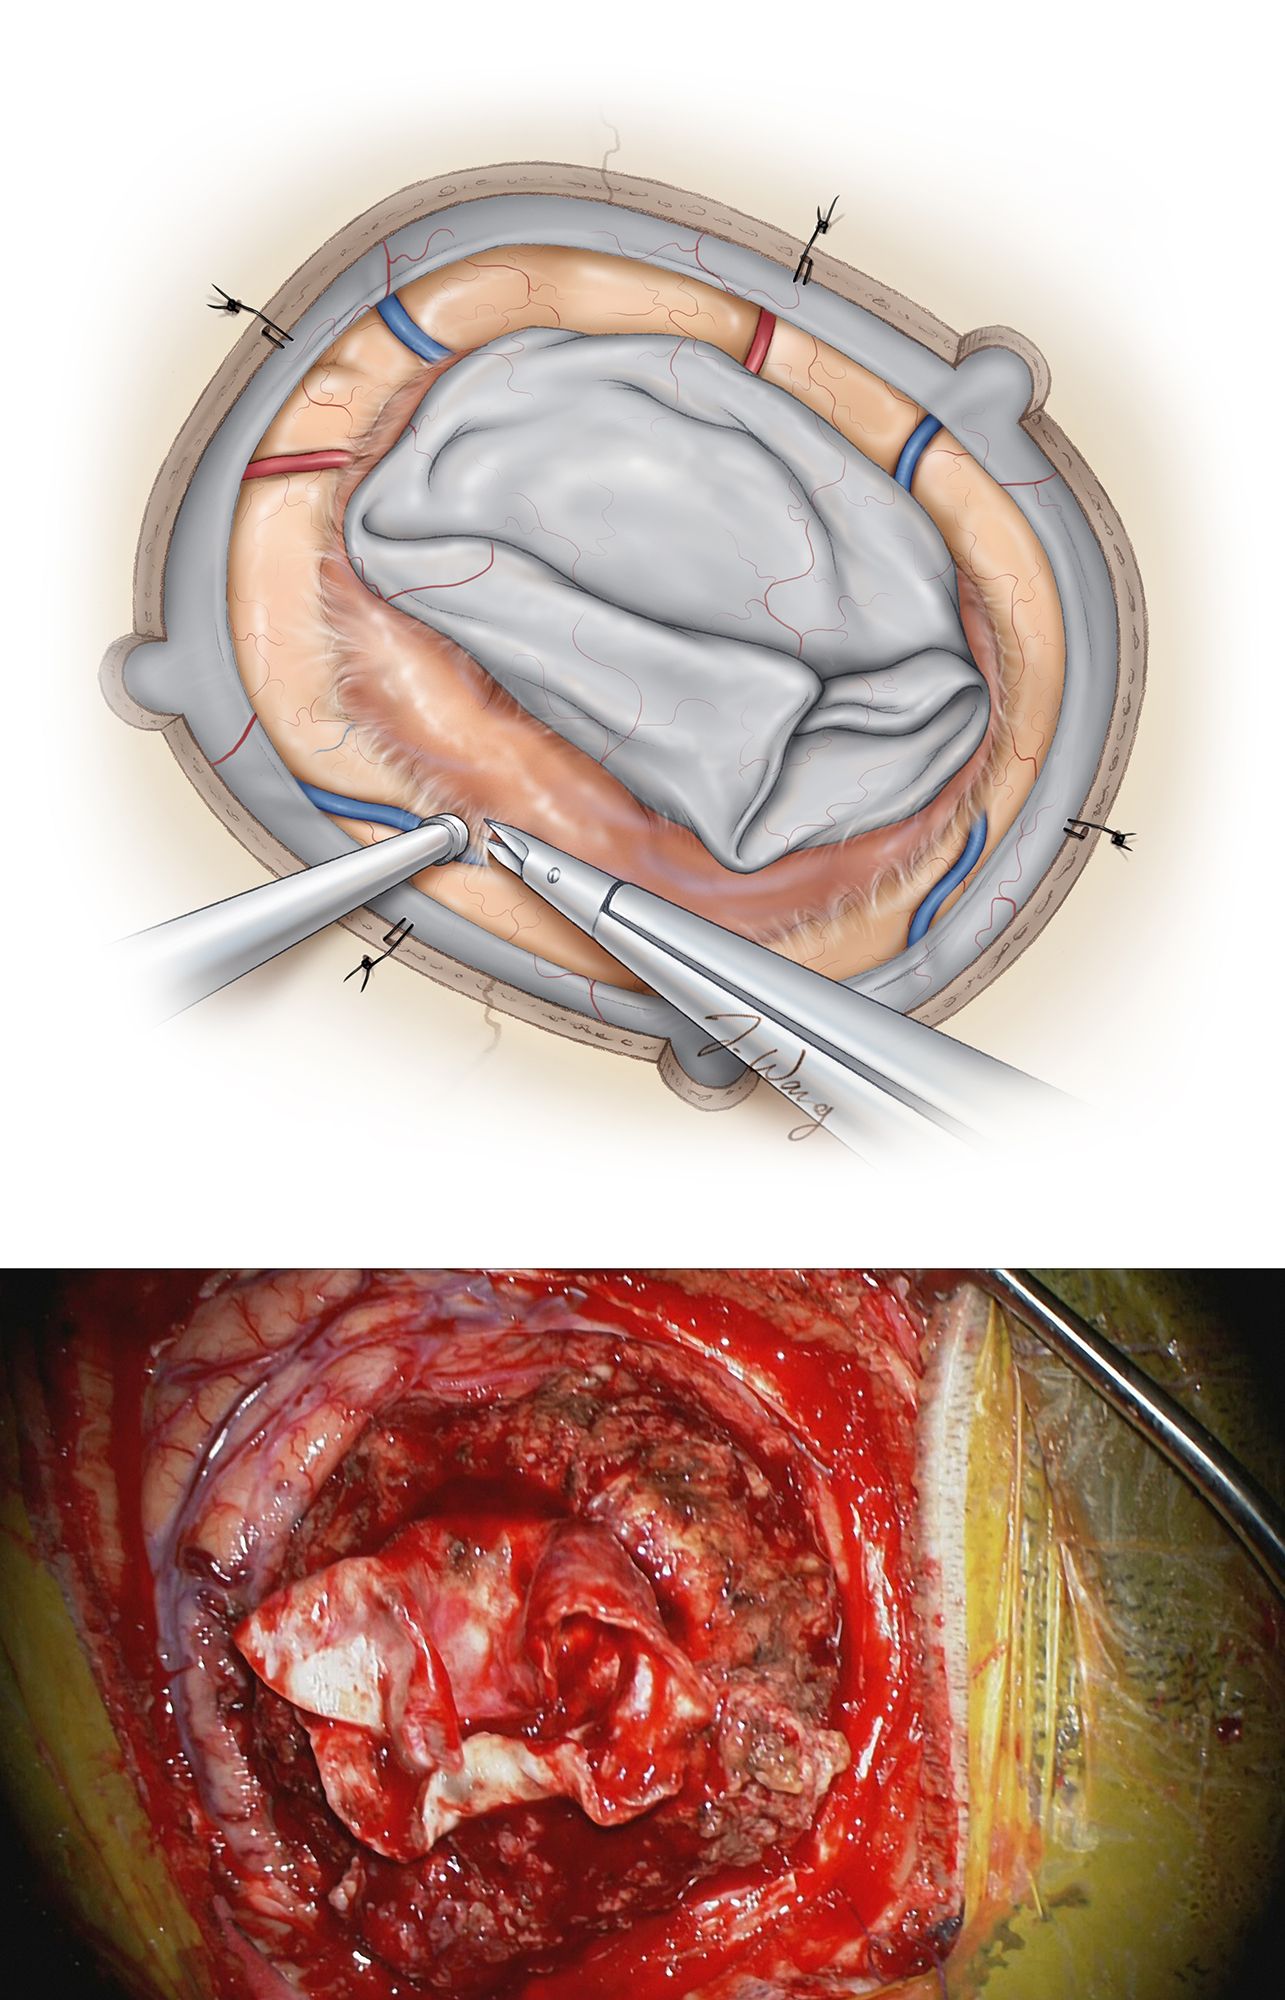 Figure 8: The involved dura is left attached to the tumor to assist with tumor retraction. The subarachnoid planes are identified and opened sharply at the periphery of the tumor (upper image). Care is taken to avoid pial violation, especially around the functional cortices. All vessels within the extracapsular plane should be carefully inspected and  en passage vessels protected . This is especially important for more posterior meningiomas because sacrifice of the larger convexity/parasagittal veins may result in disabling venous infarction and postoperative malignant edema. A left parietal meningioma is exposed (lower image-See figure 4 for more details).